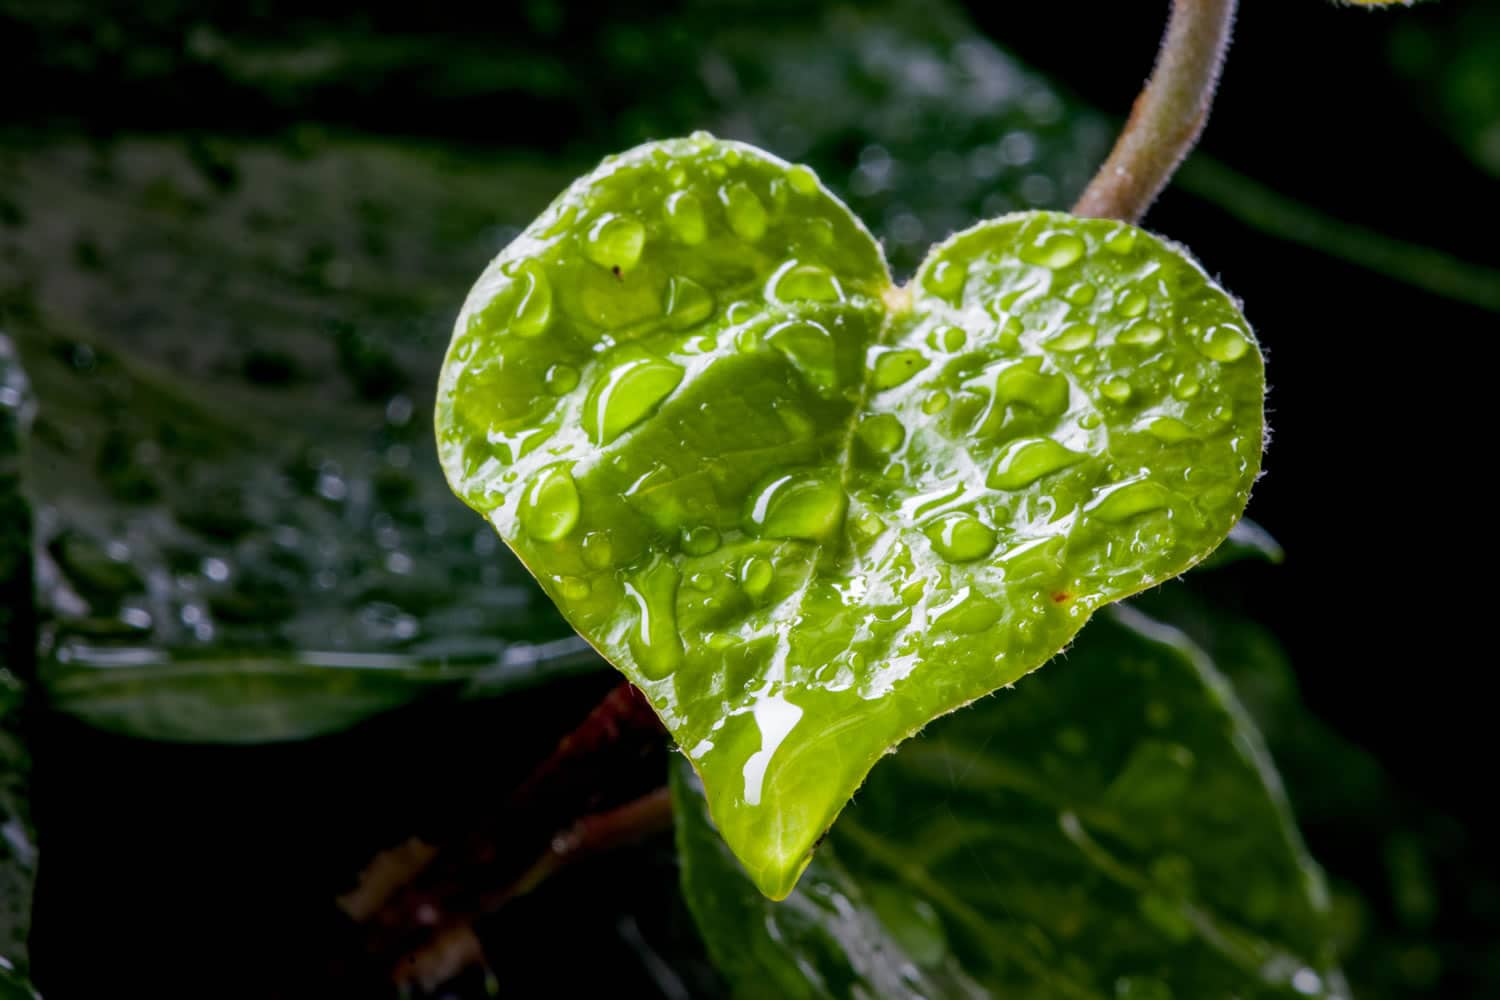 Heart-shaped leaf with water droplets